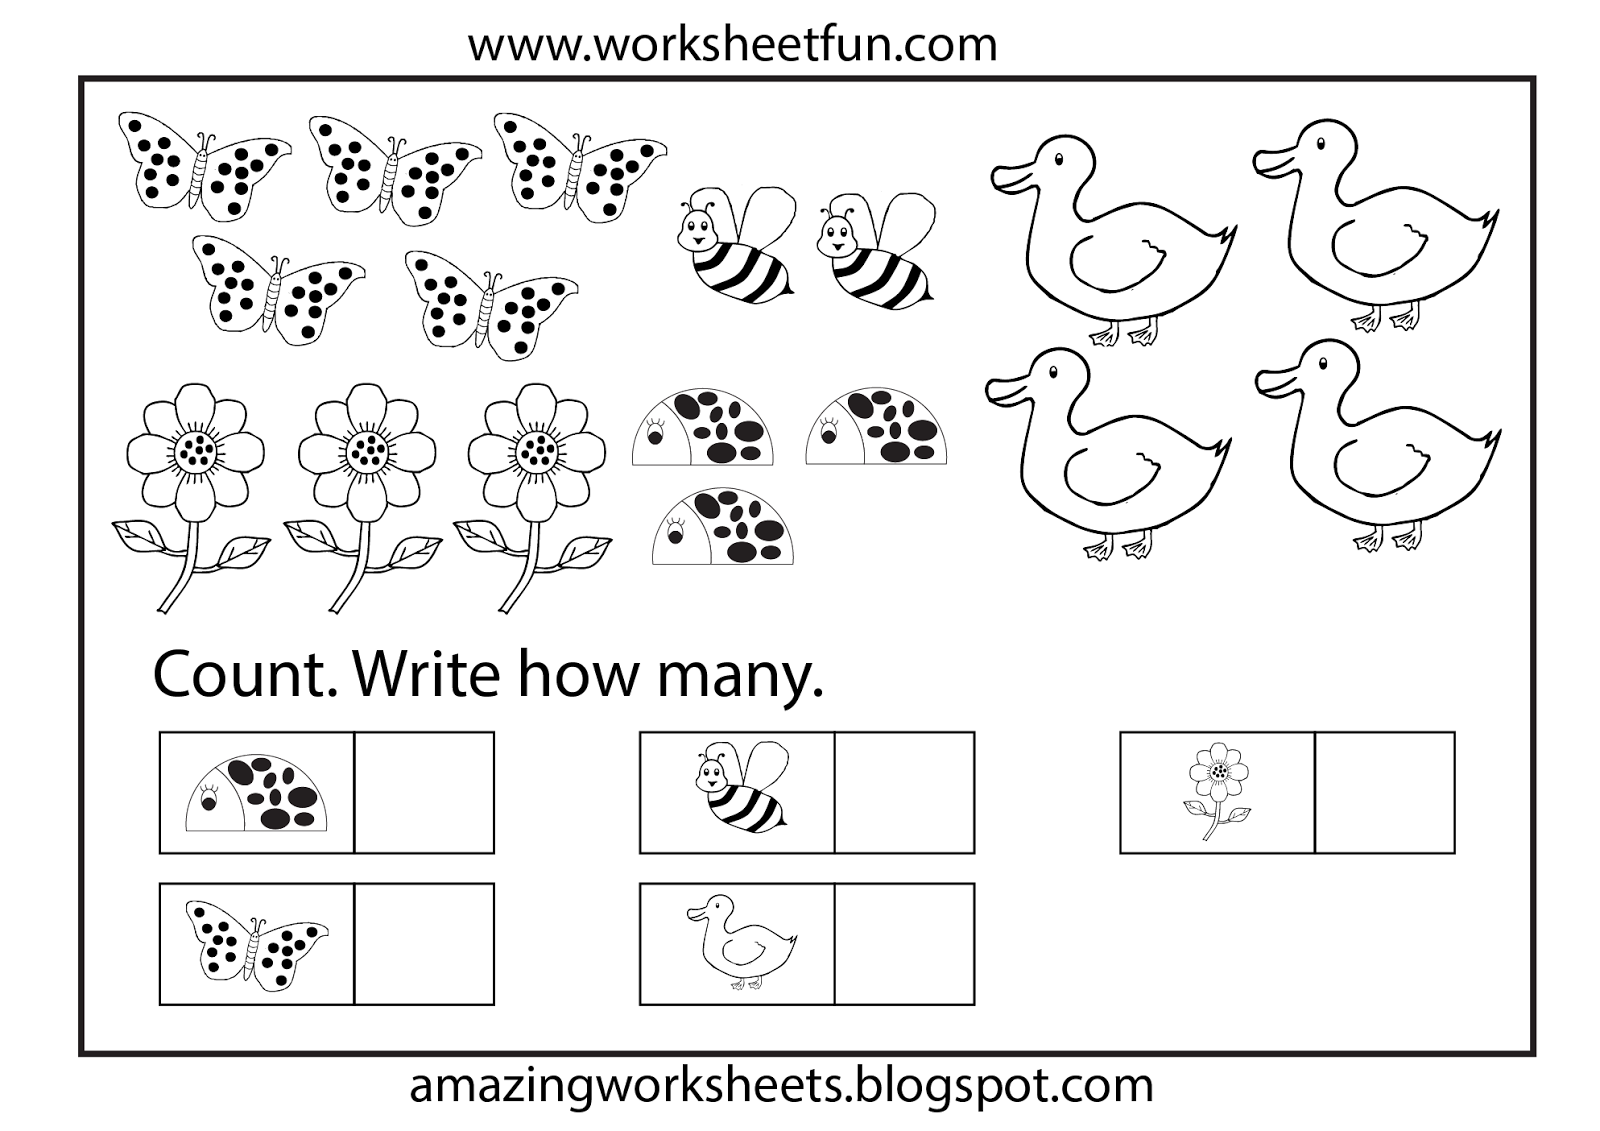 Worksheets Worksheet For Kindergarten kindergarten coloring and worksheets for on pinterest